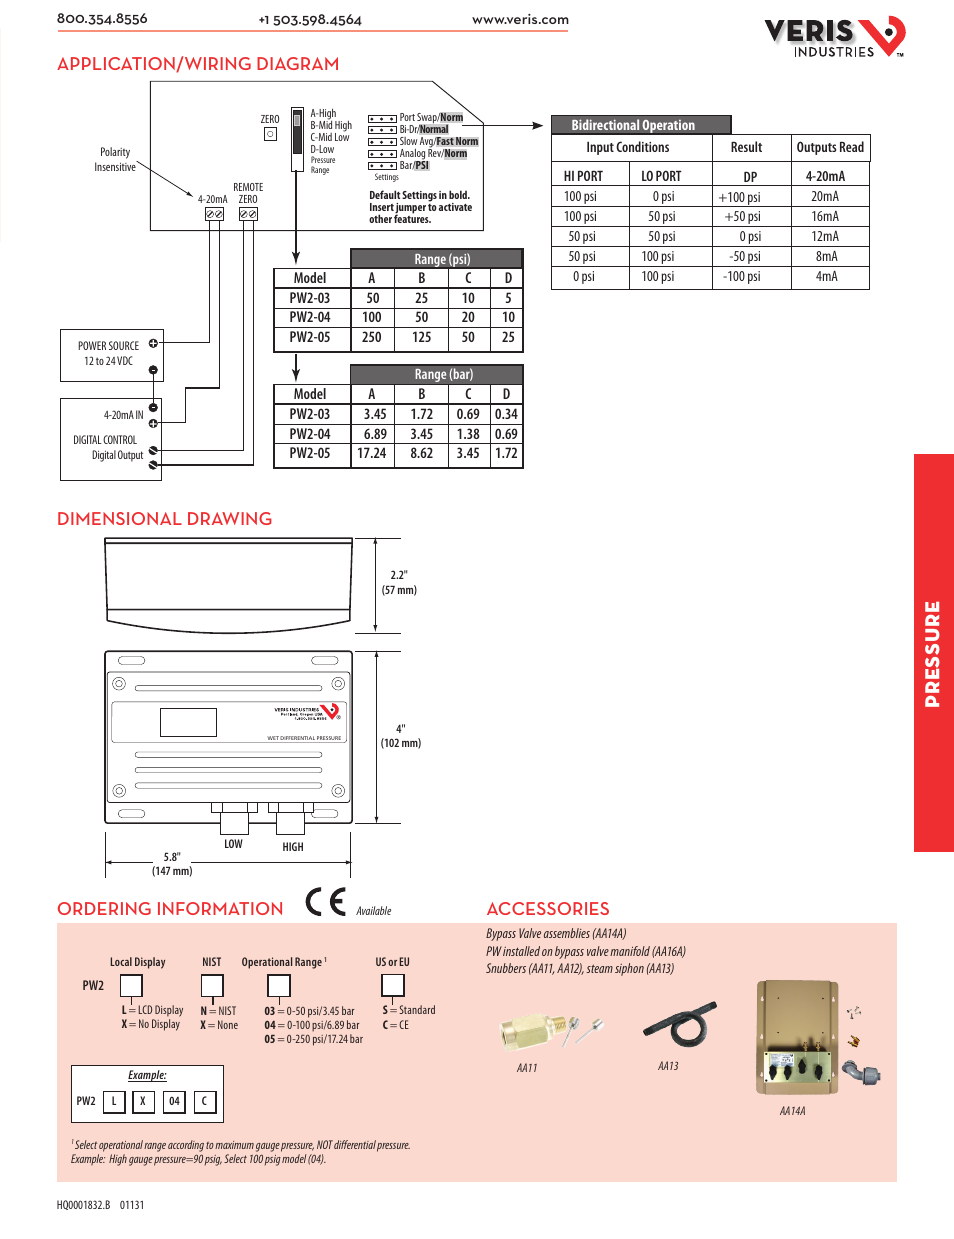 veris industries pw2 series datasheet page2 pressure, accessories, application wiring diagram dimensional  at edmiracle.co